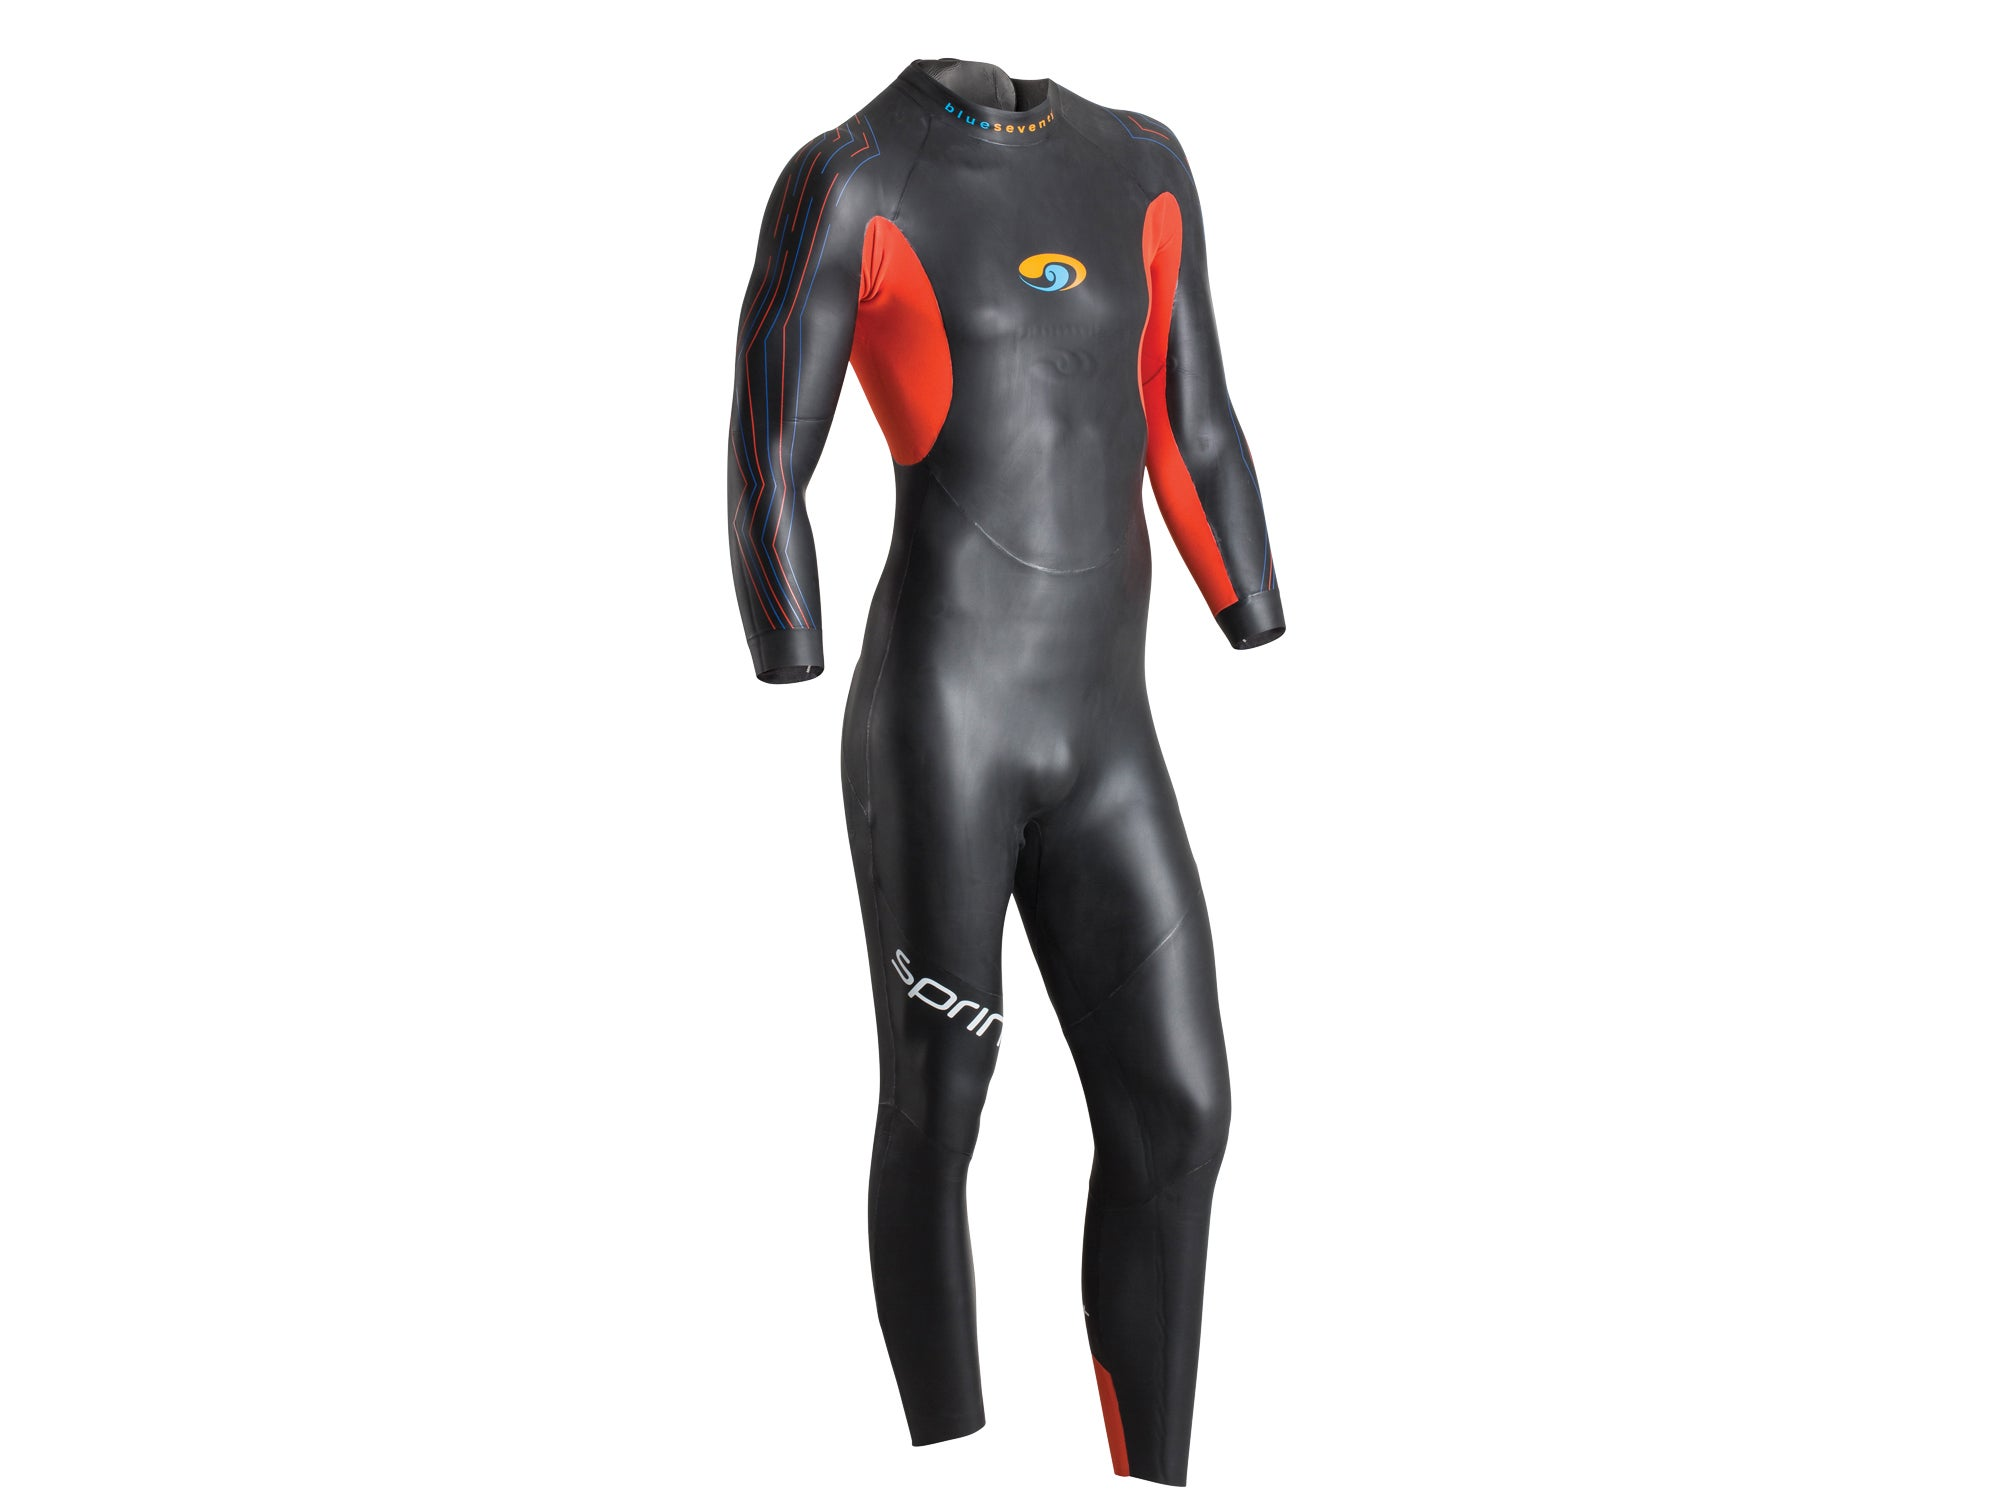 Best wetsuit for triathletes